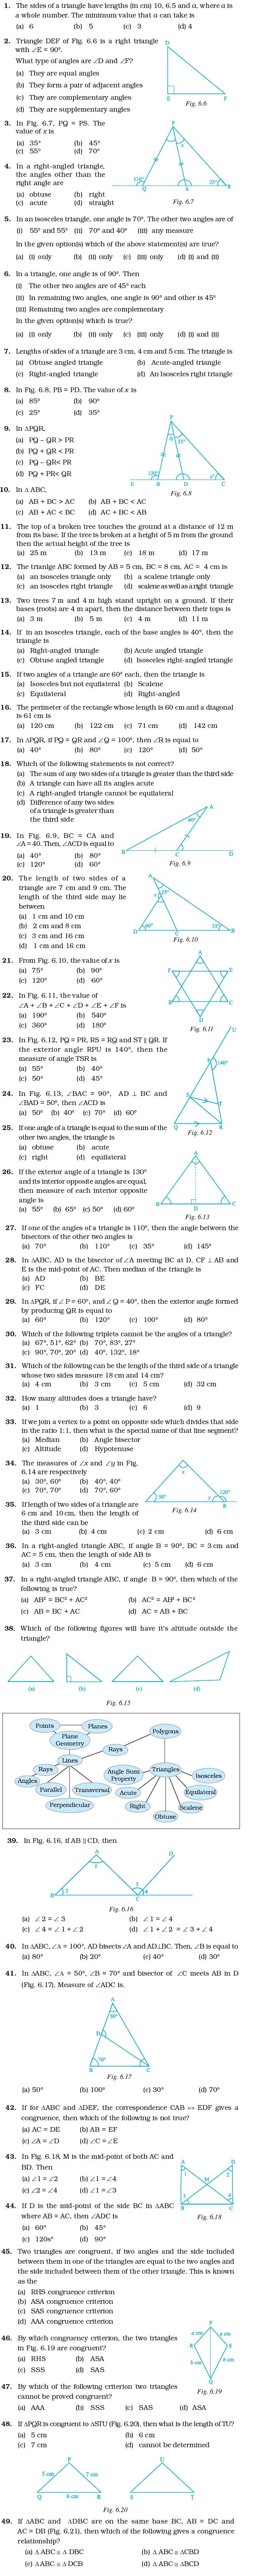 Class 7 Important Questions For Maths Triangles Test Pinterest Diodetransistor Logic Electronics And Electrical Quizzes Eeweb